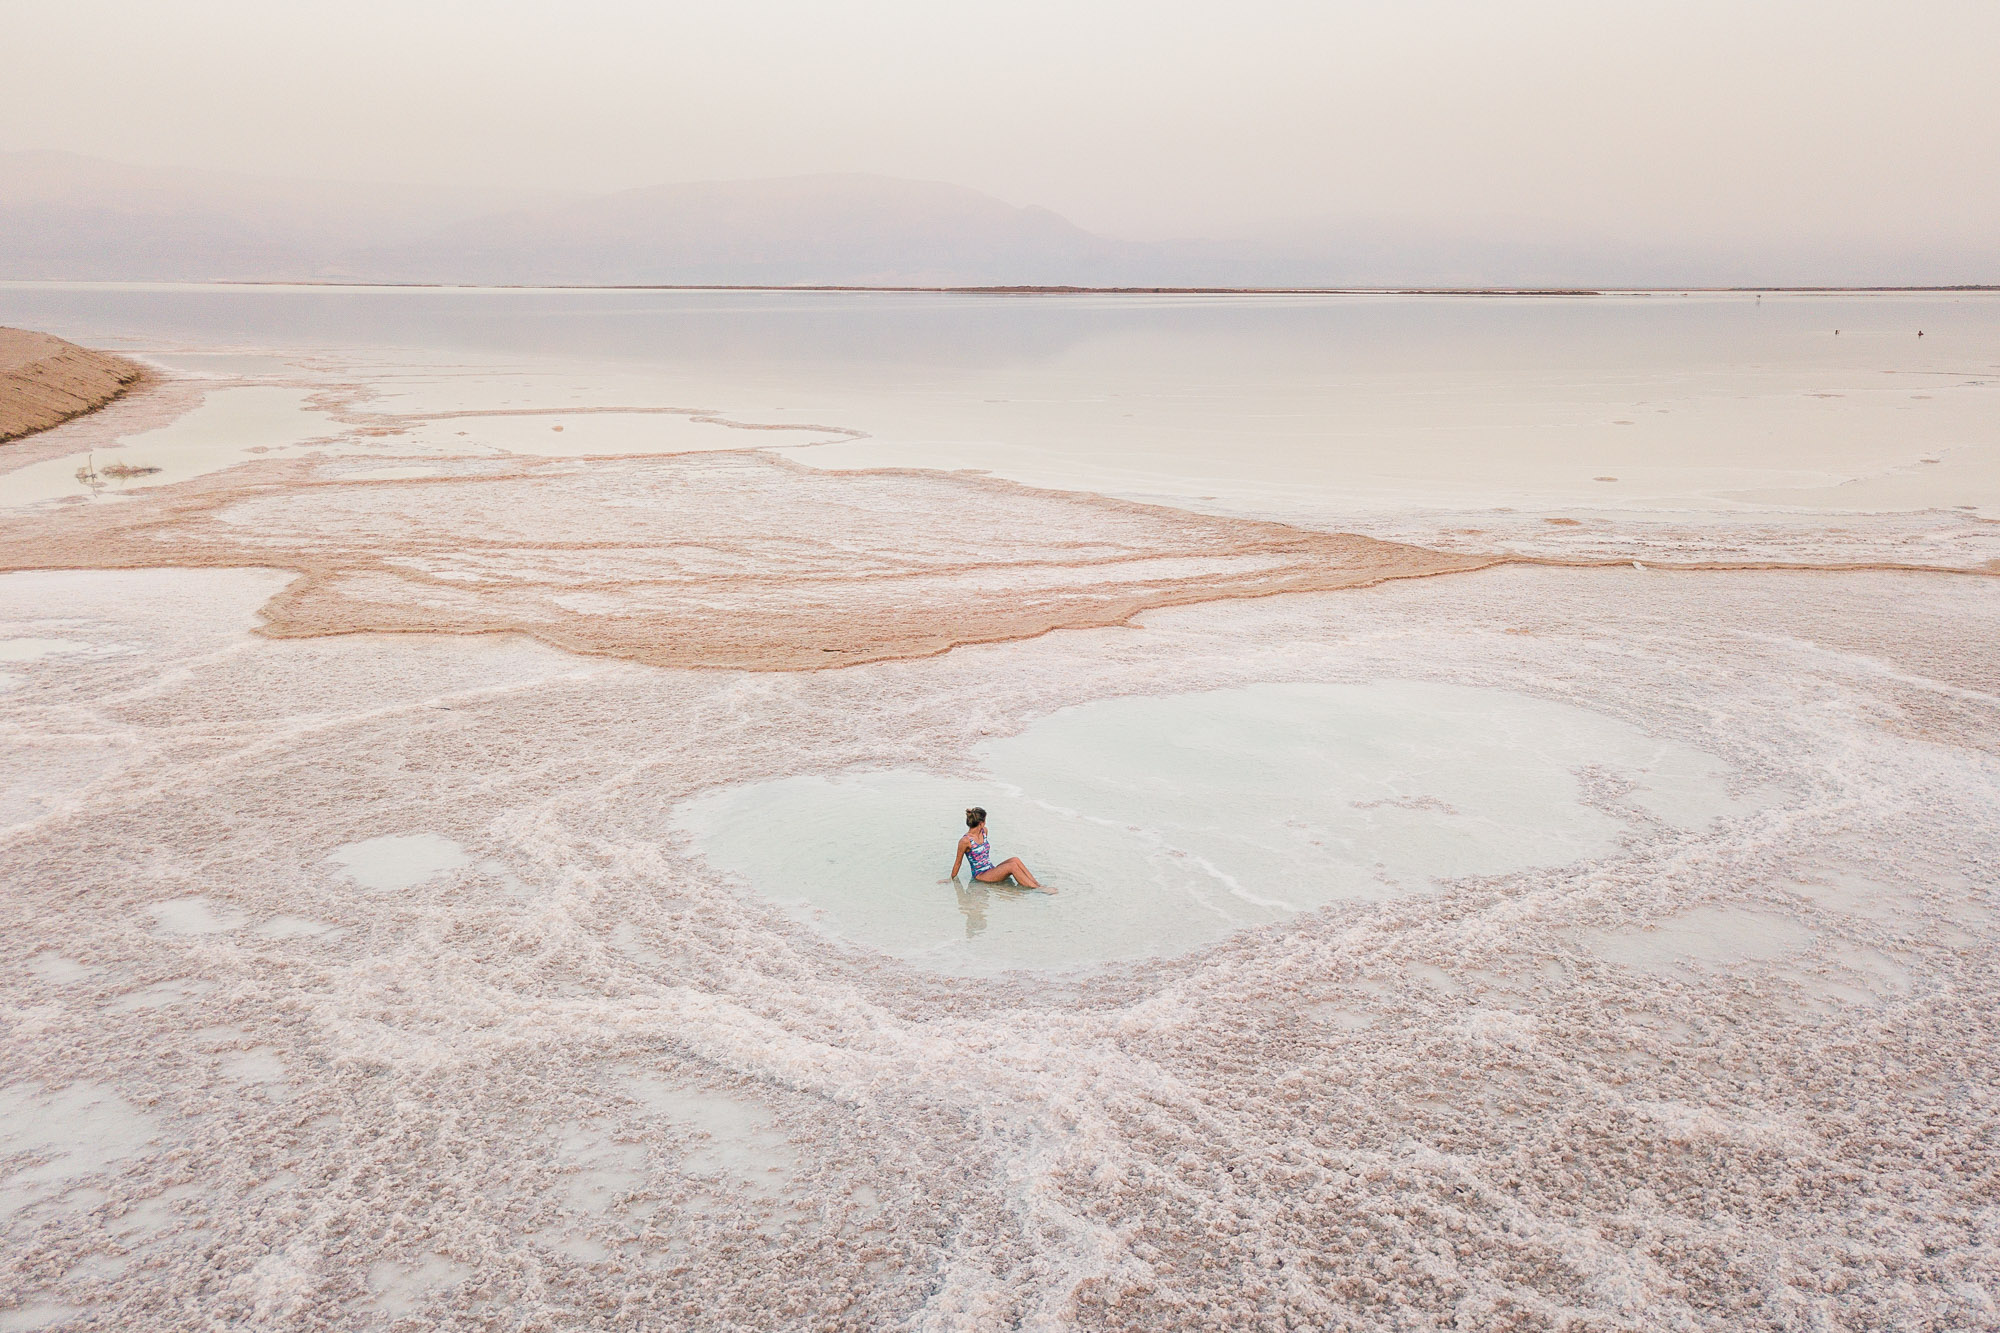 Drone shot of Dead Sea Salt best beaches in Israel my bucket list item Find Us Lost